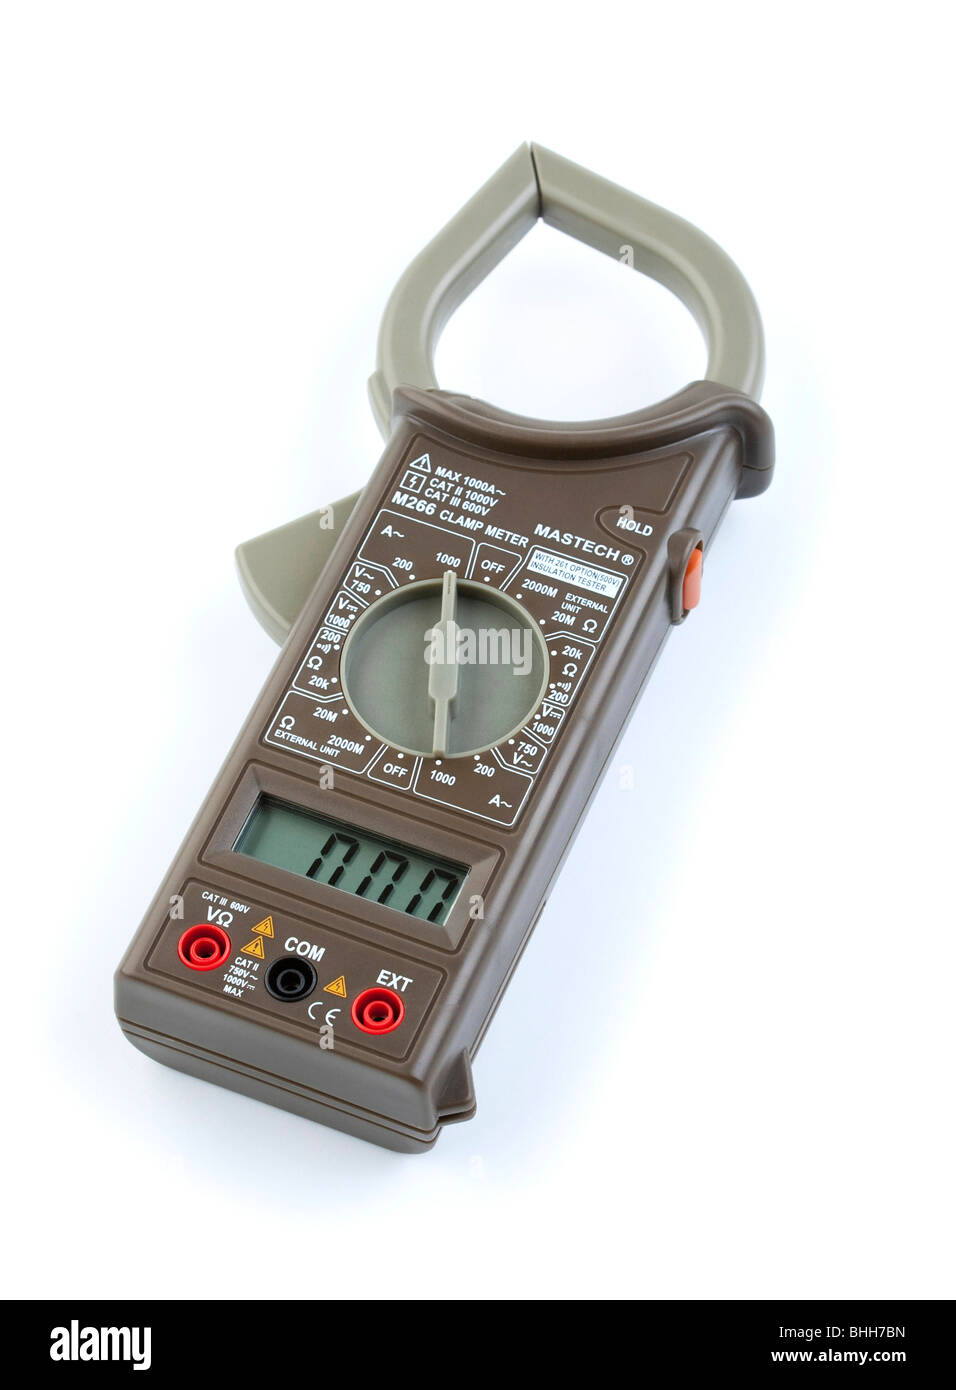 digital multimeter with current clamp measurement - Stock Image